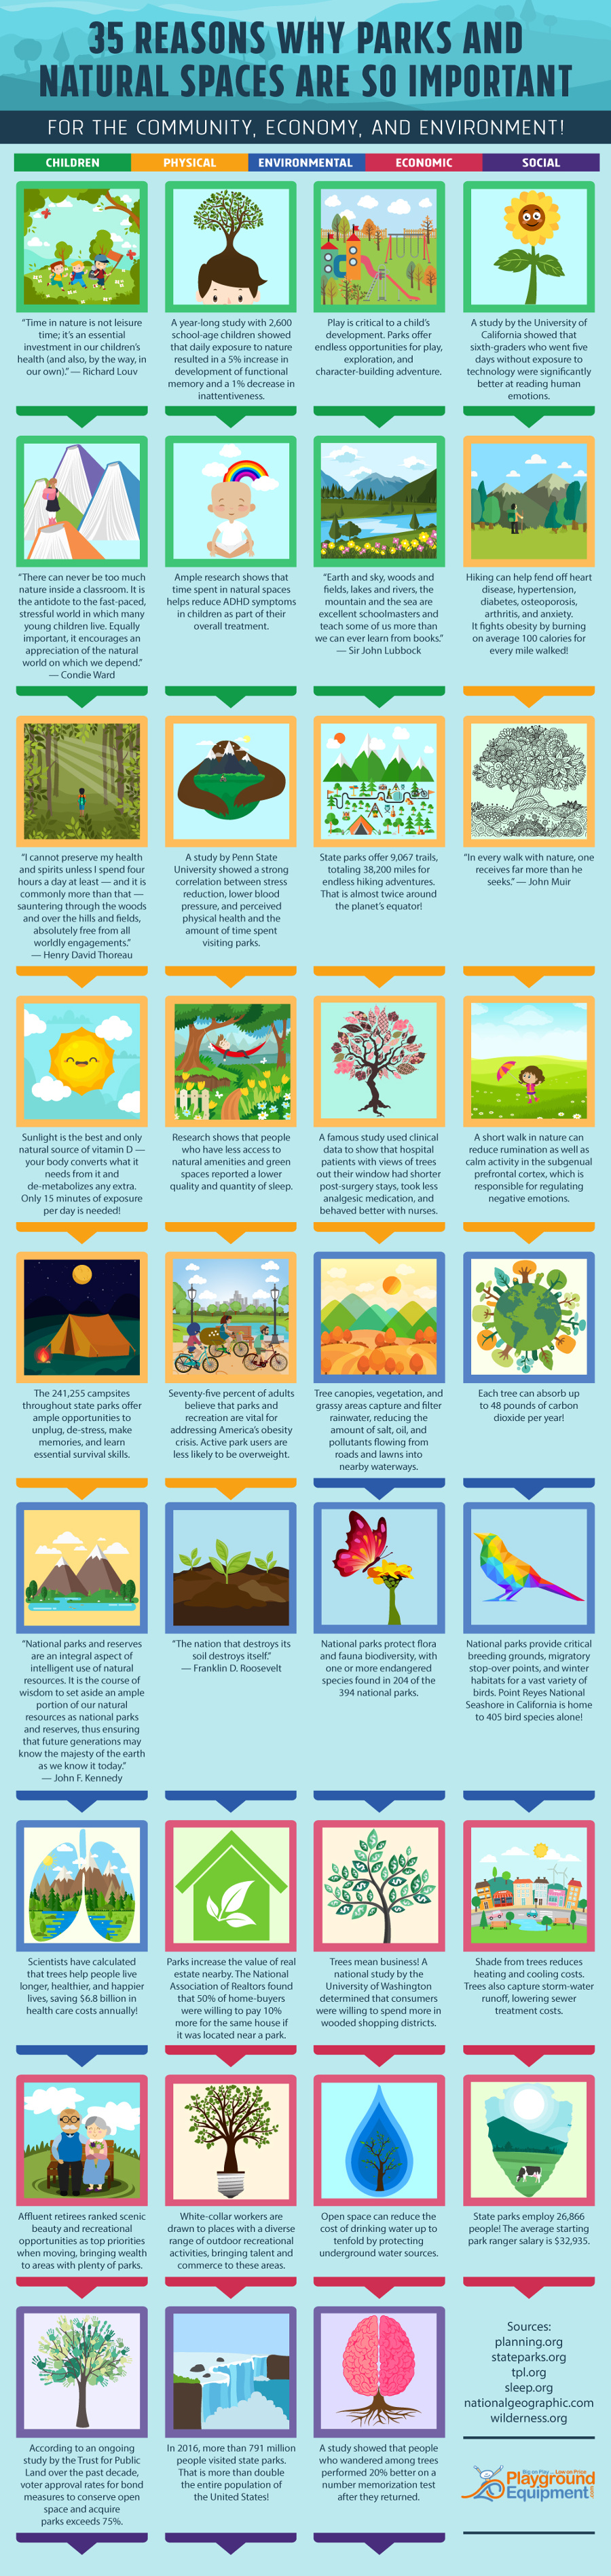 35 Reasons Why Parks and Natural Spaces Are So Important - PlaygroundEquipment.com- Infographic